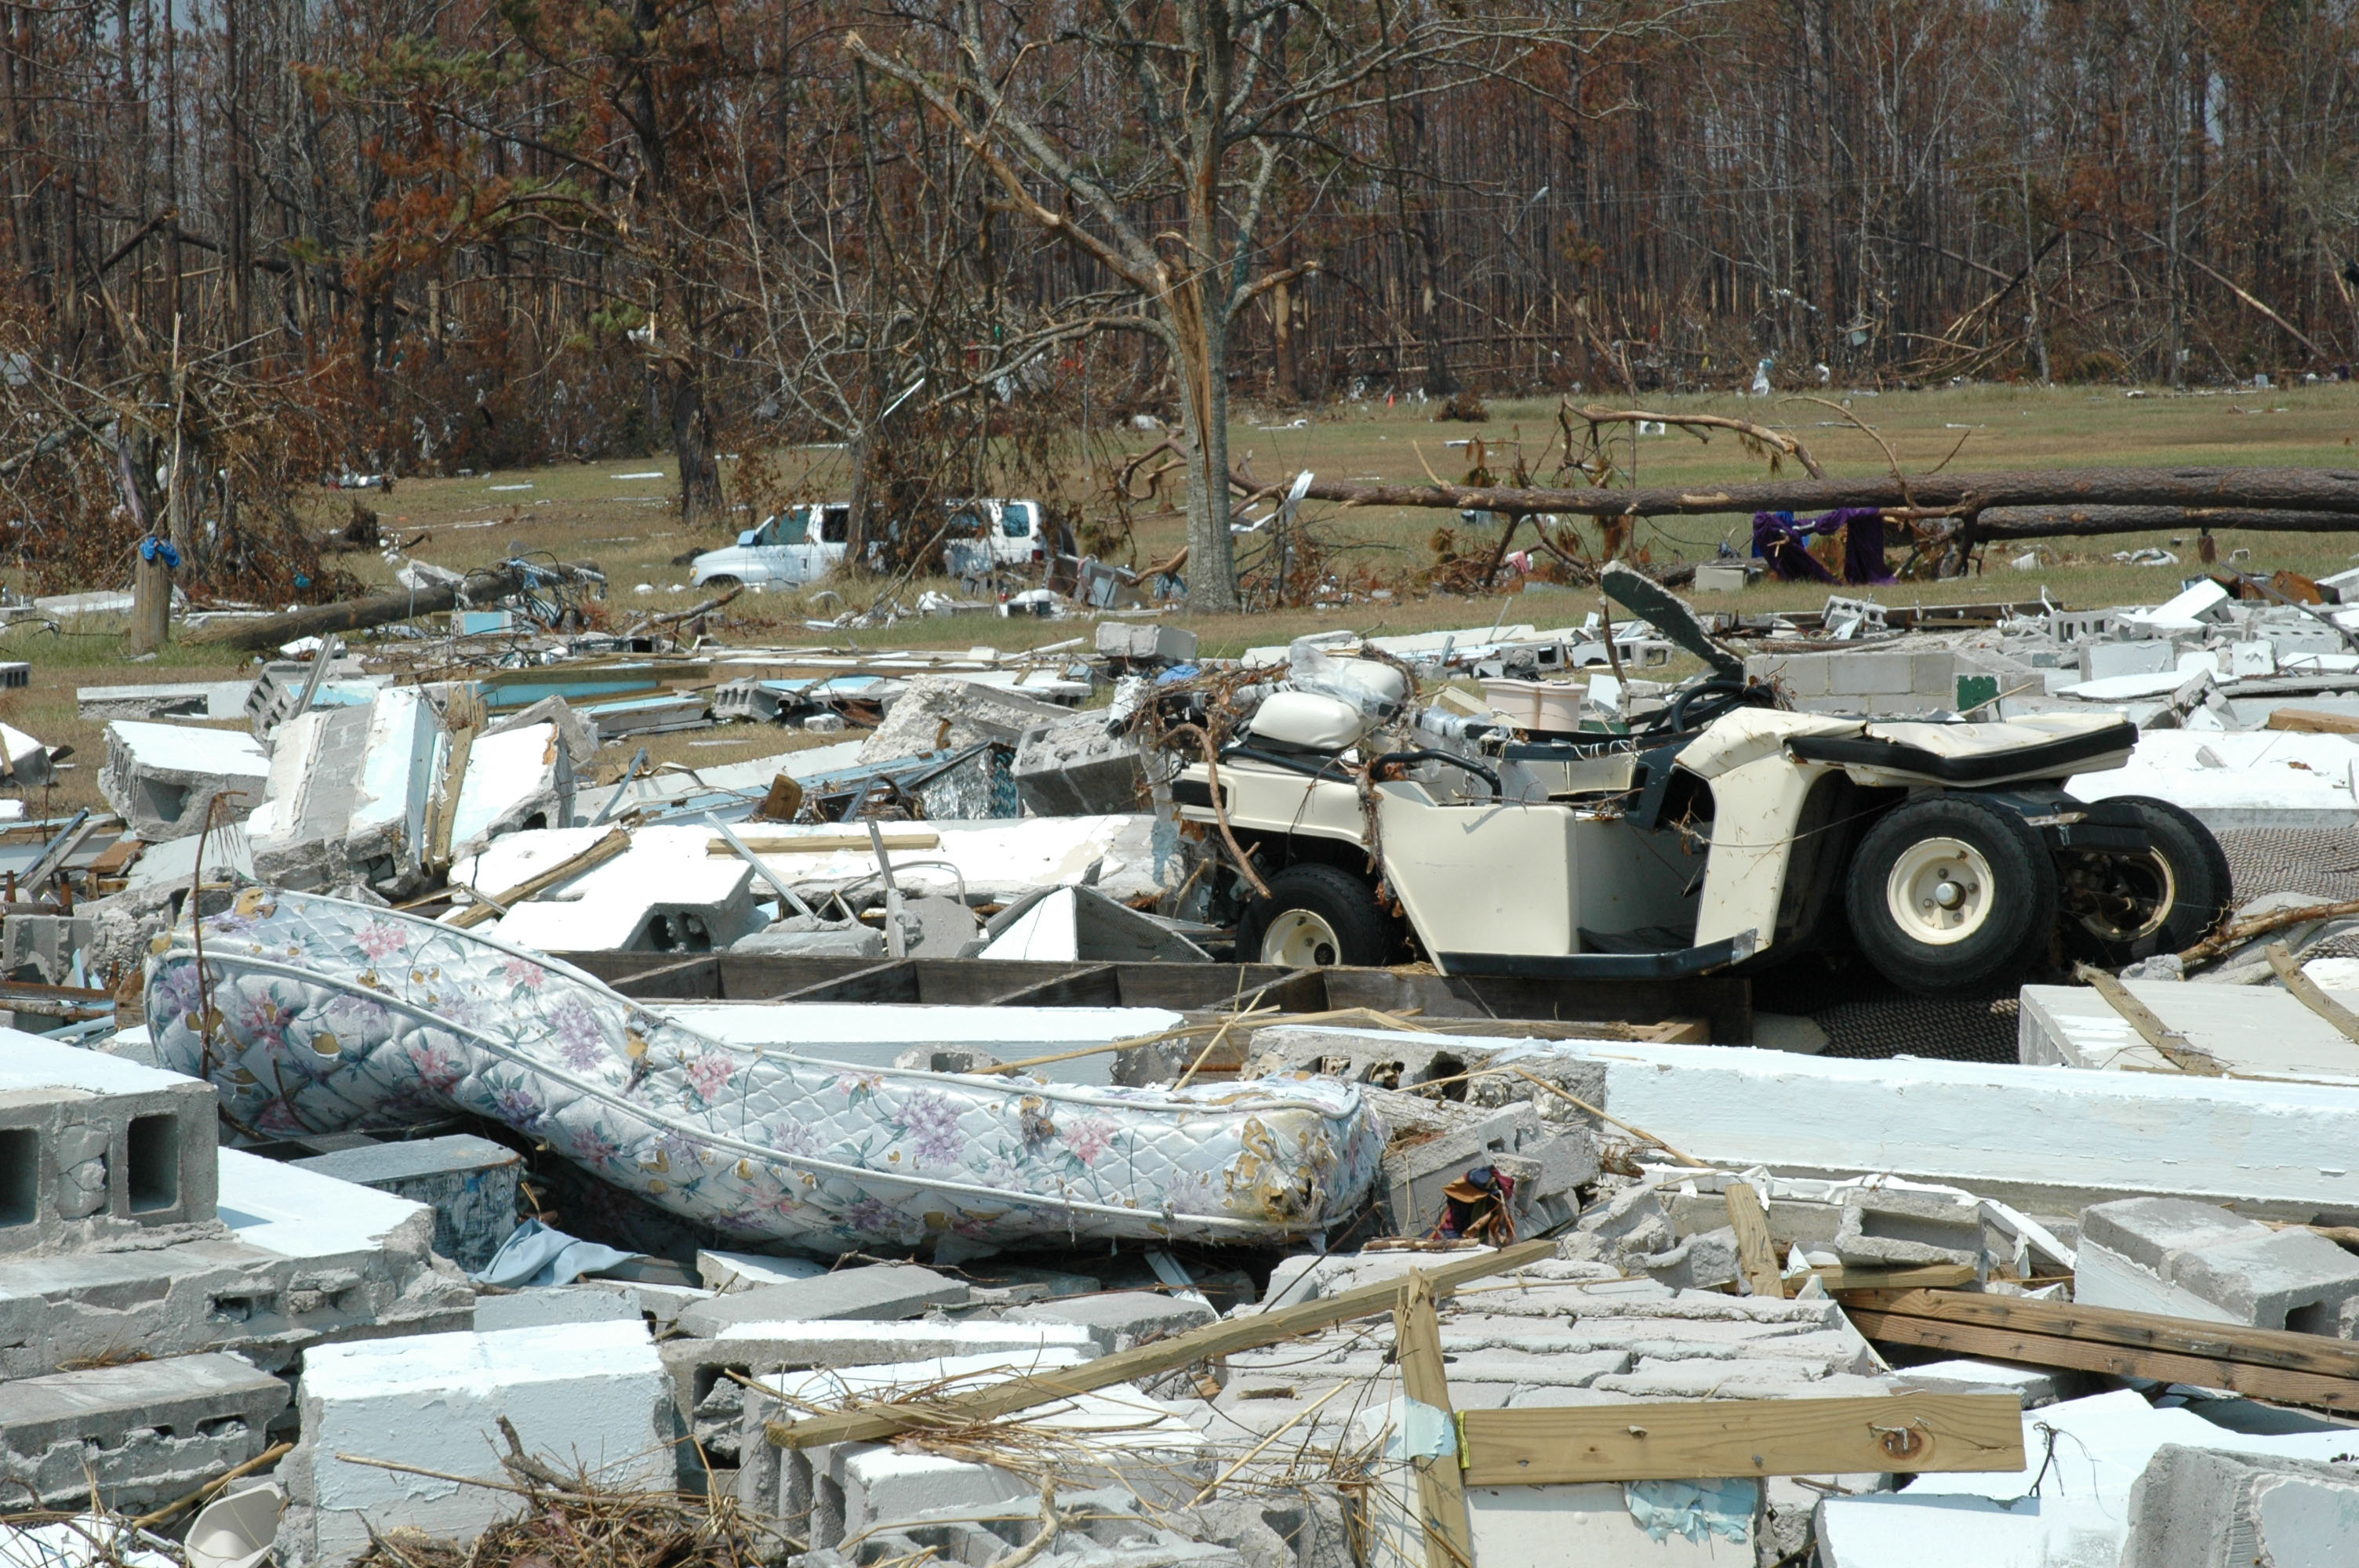 Mattresses mark the remains of dorm rooms at Gulfside Assembly. A UMNS photo by the Rev. Larry Hollon.